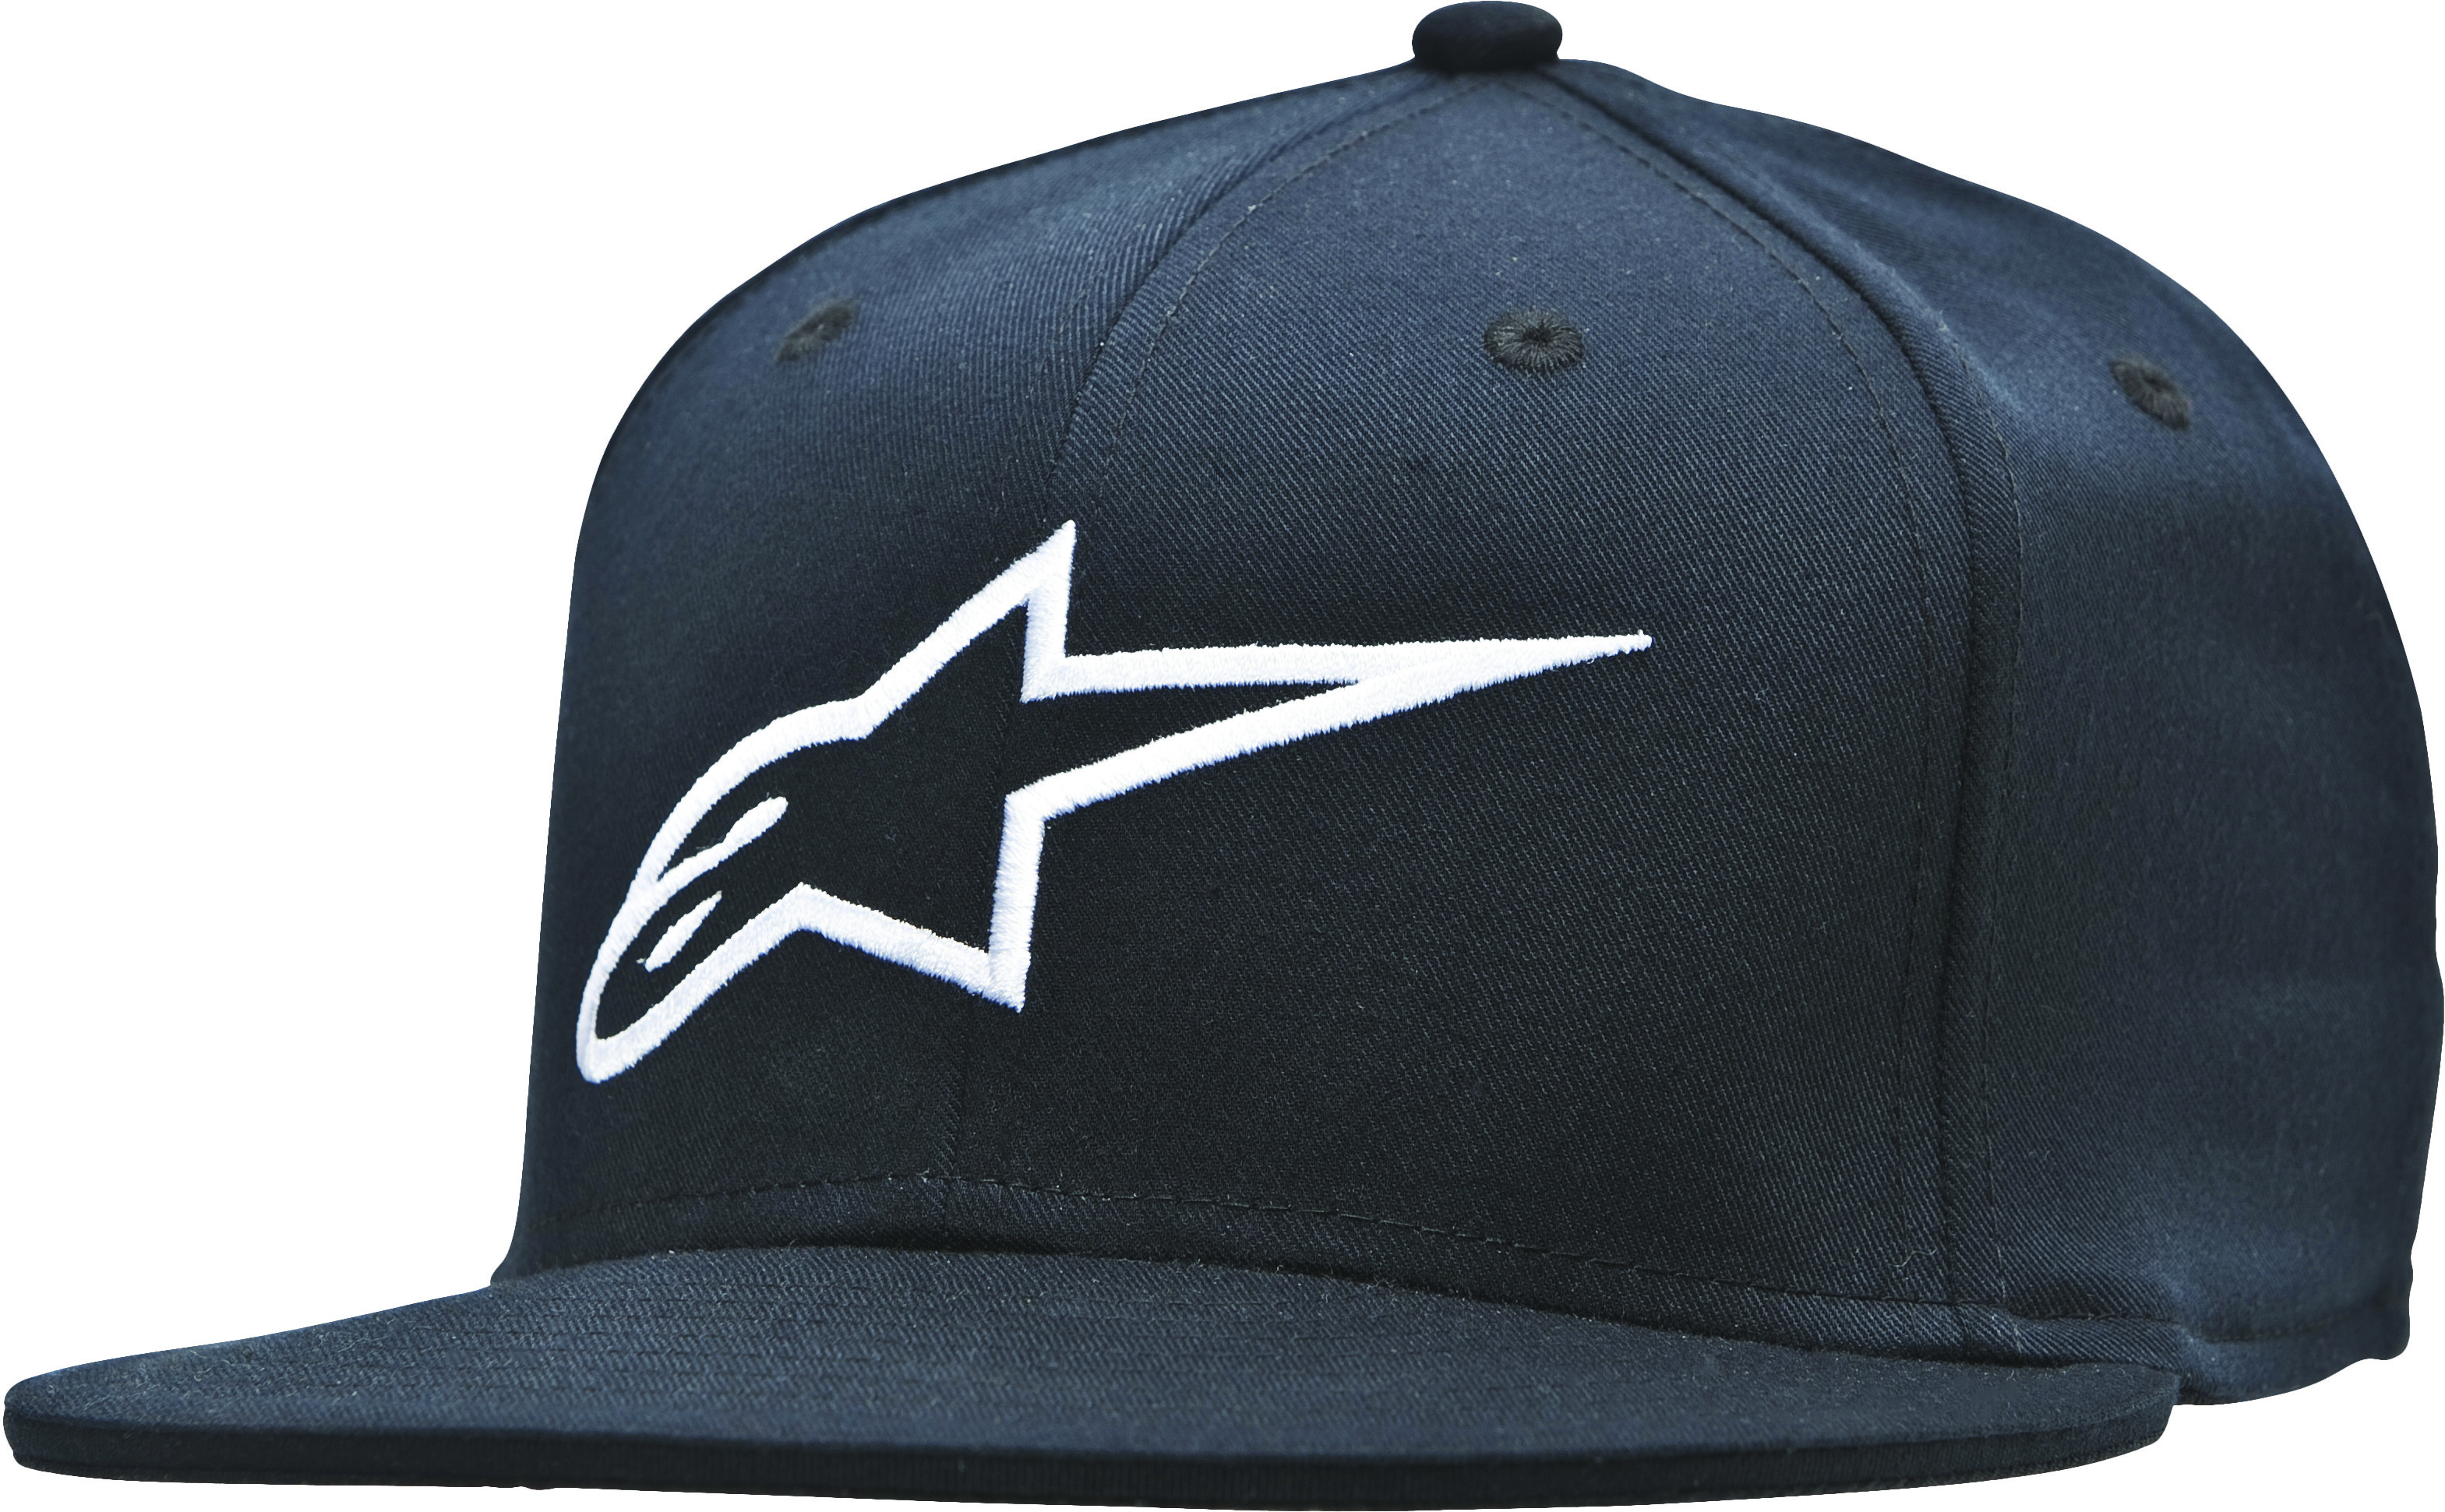 Ageless Flat Bill Hat Black/White L/X